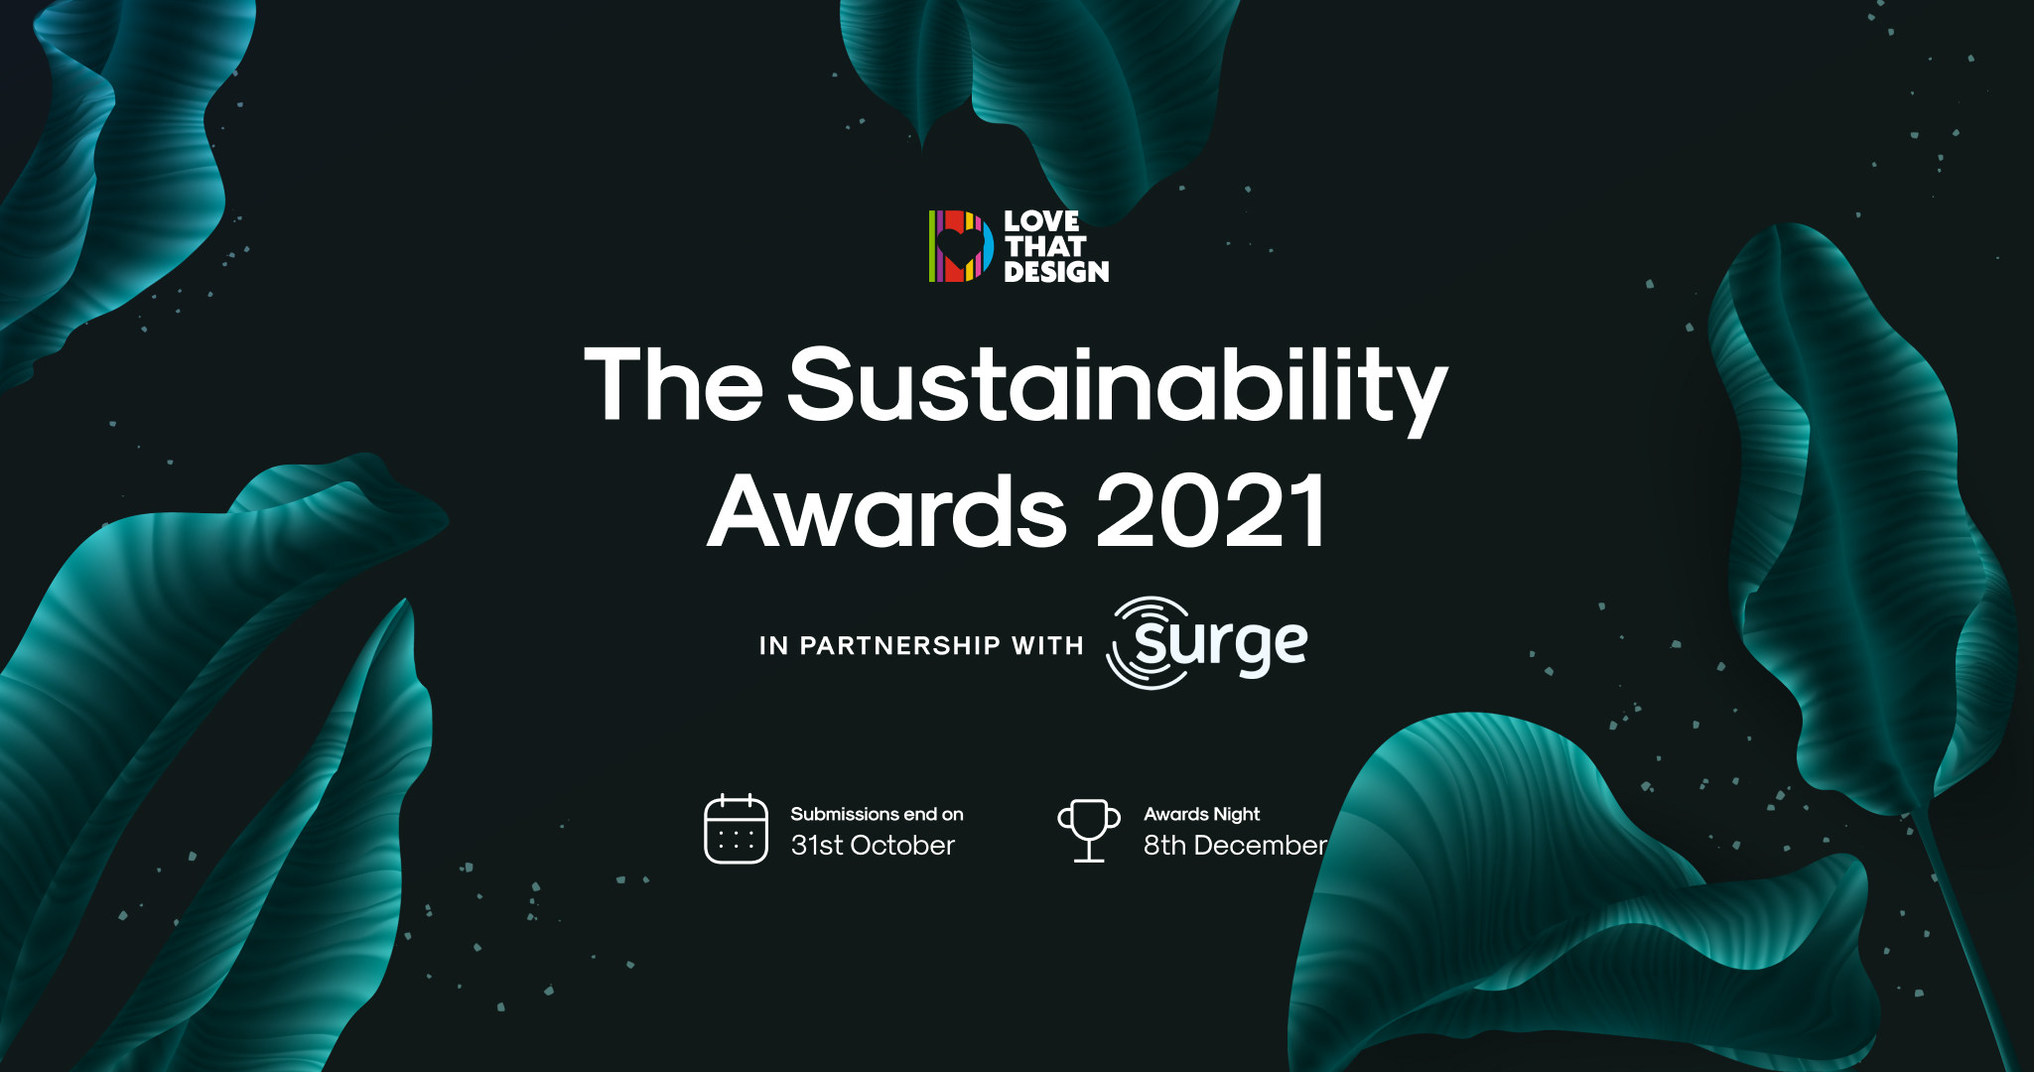 Love That Design announces the region's first sustainable design awards in partnership with Surge For Water - PRNewswire